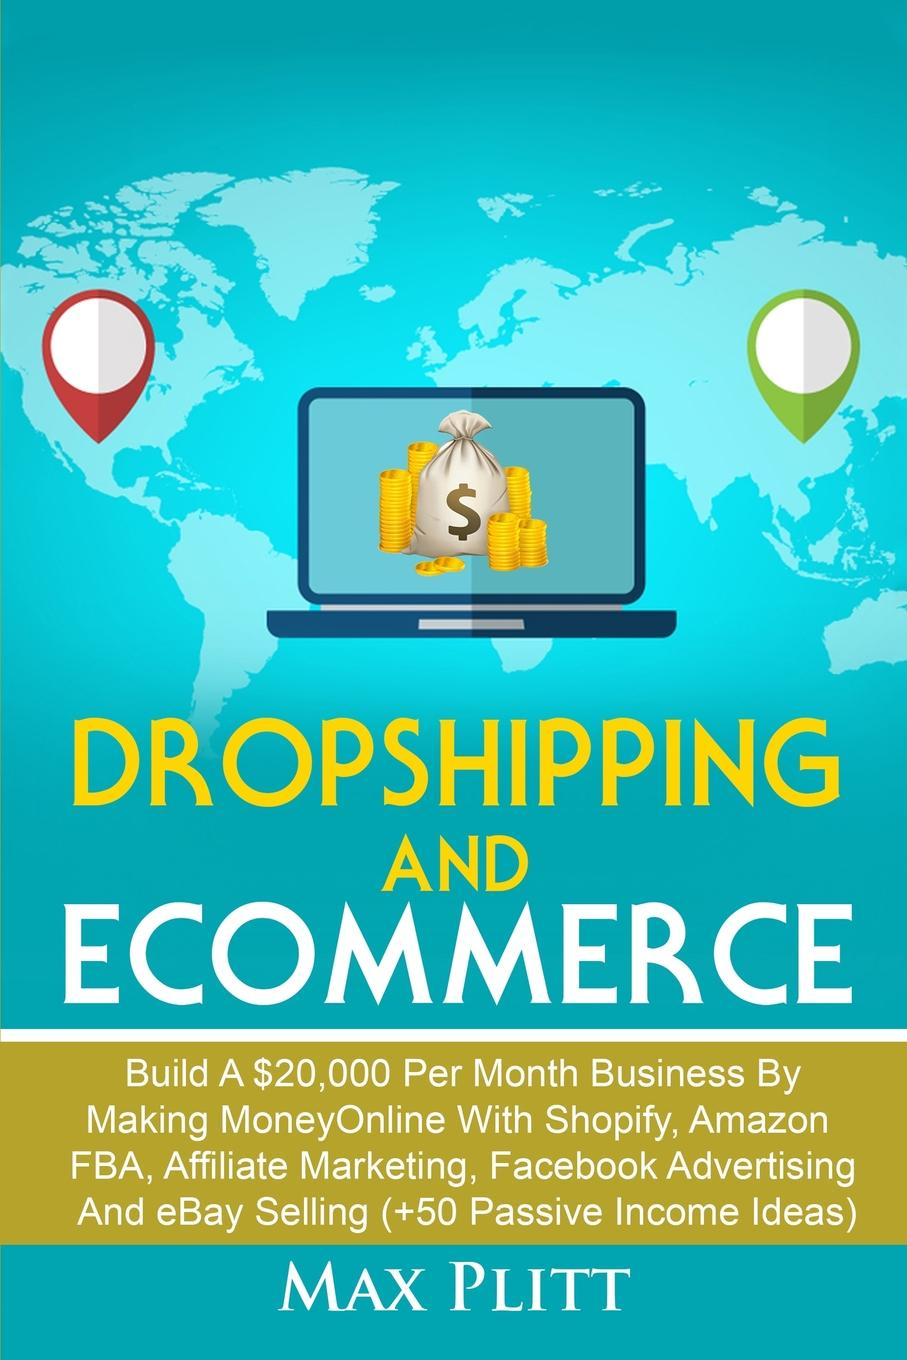 Dropshipping And Ecommerce. Build A .20,000 per Month Business by Making Money Online with Shopify, Amazon FBA, Affiliate Marketing, Facebook Advertising and eBay Selling (.50 Passive Income Ideas) Dropshipping And Ecommerce Do you feel like money beginning...